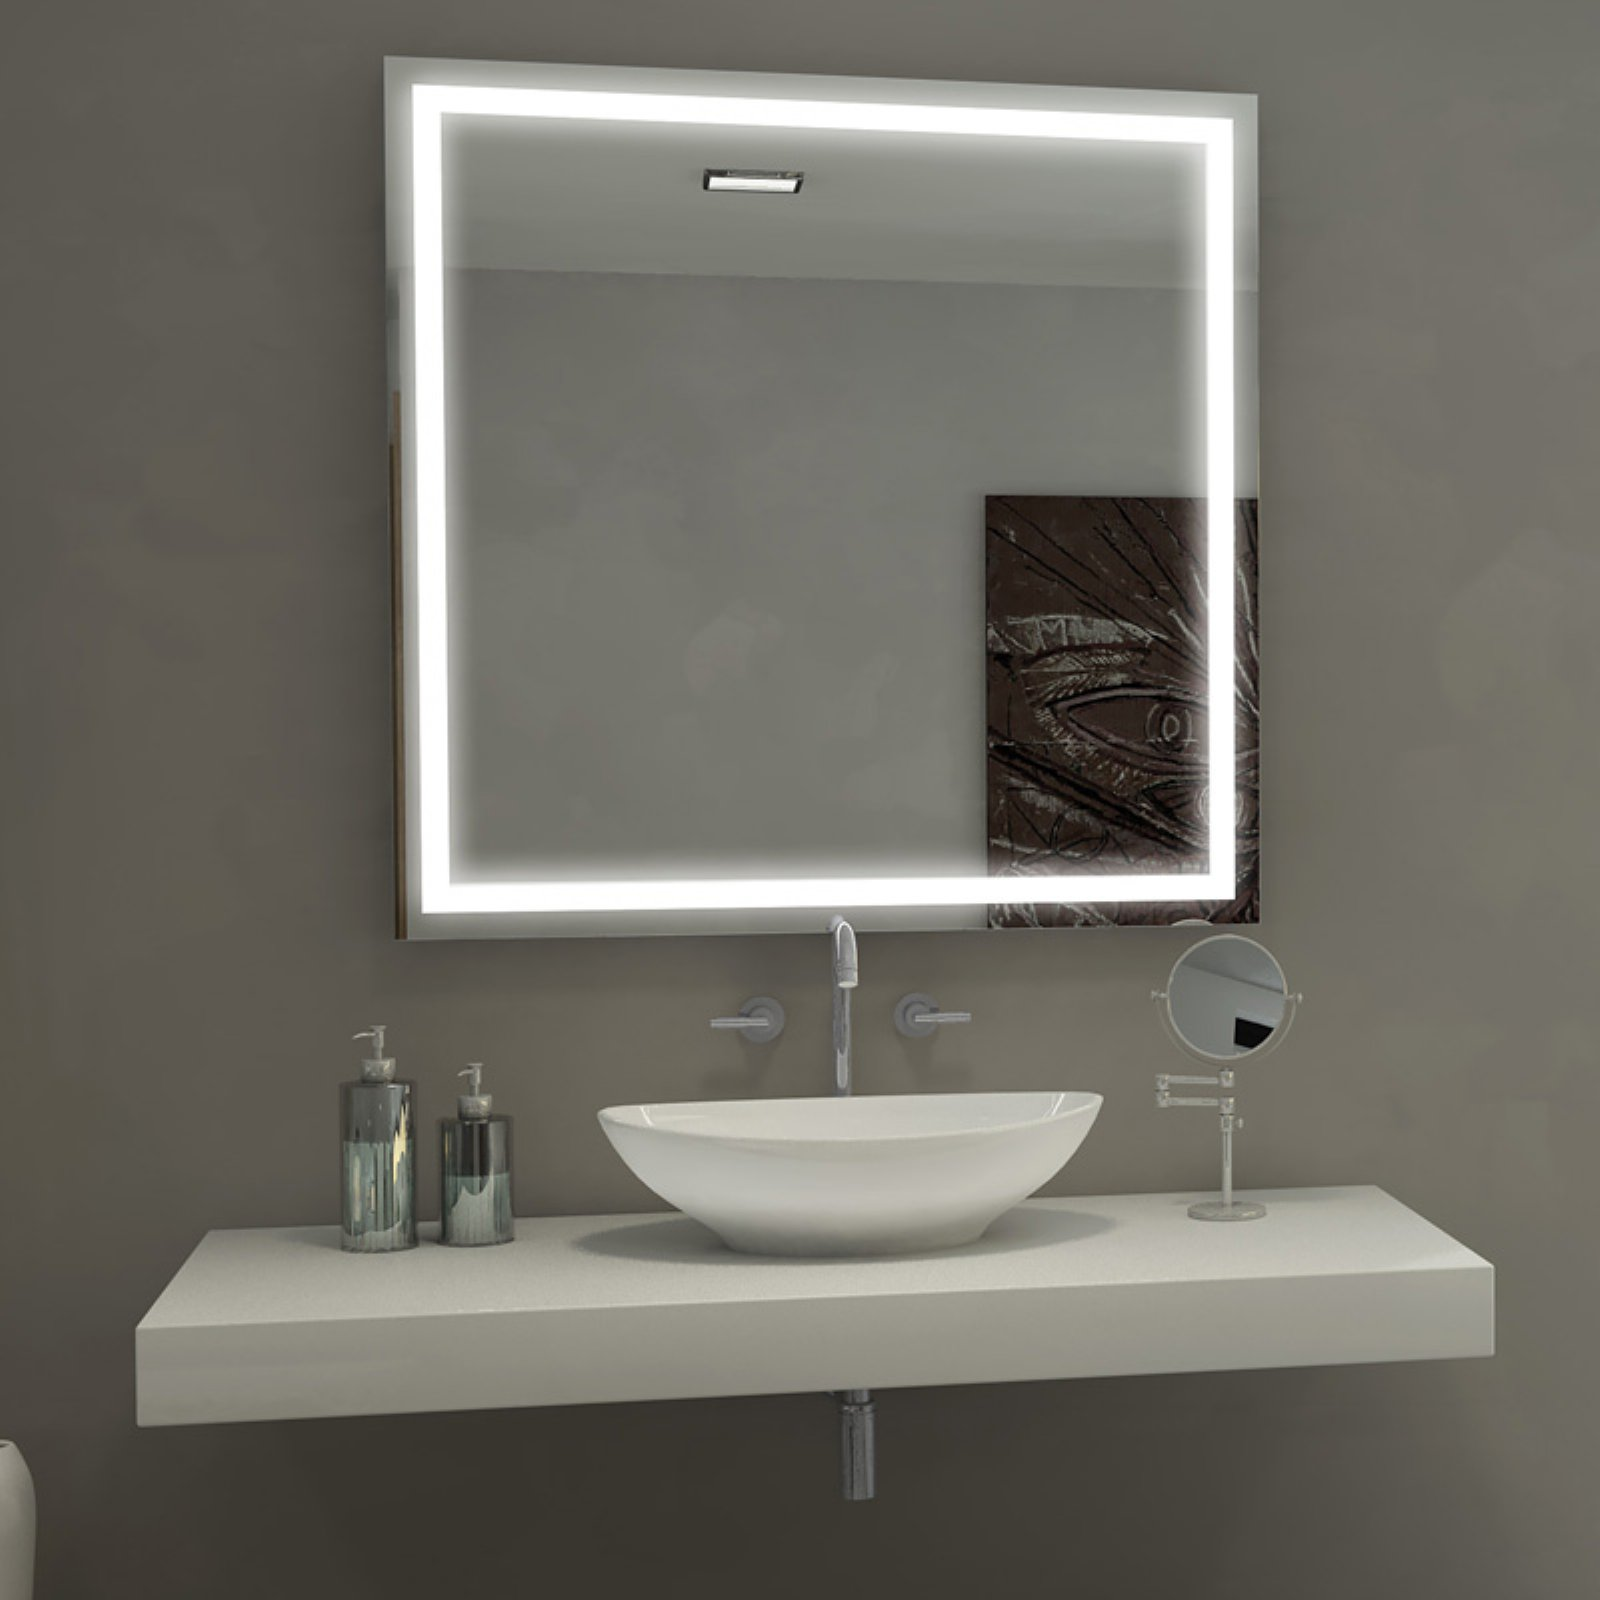 Illuminated Bathroom Mirror Paris Mirror Harmony Illuminated Bathroom Mirror